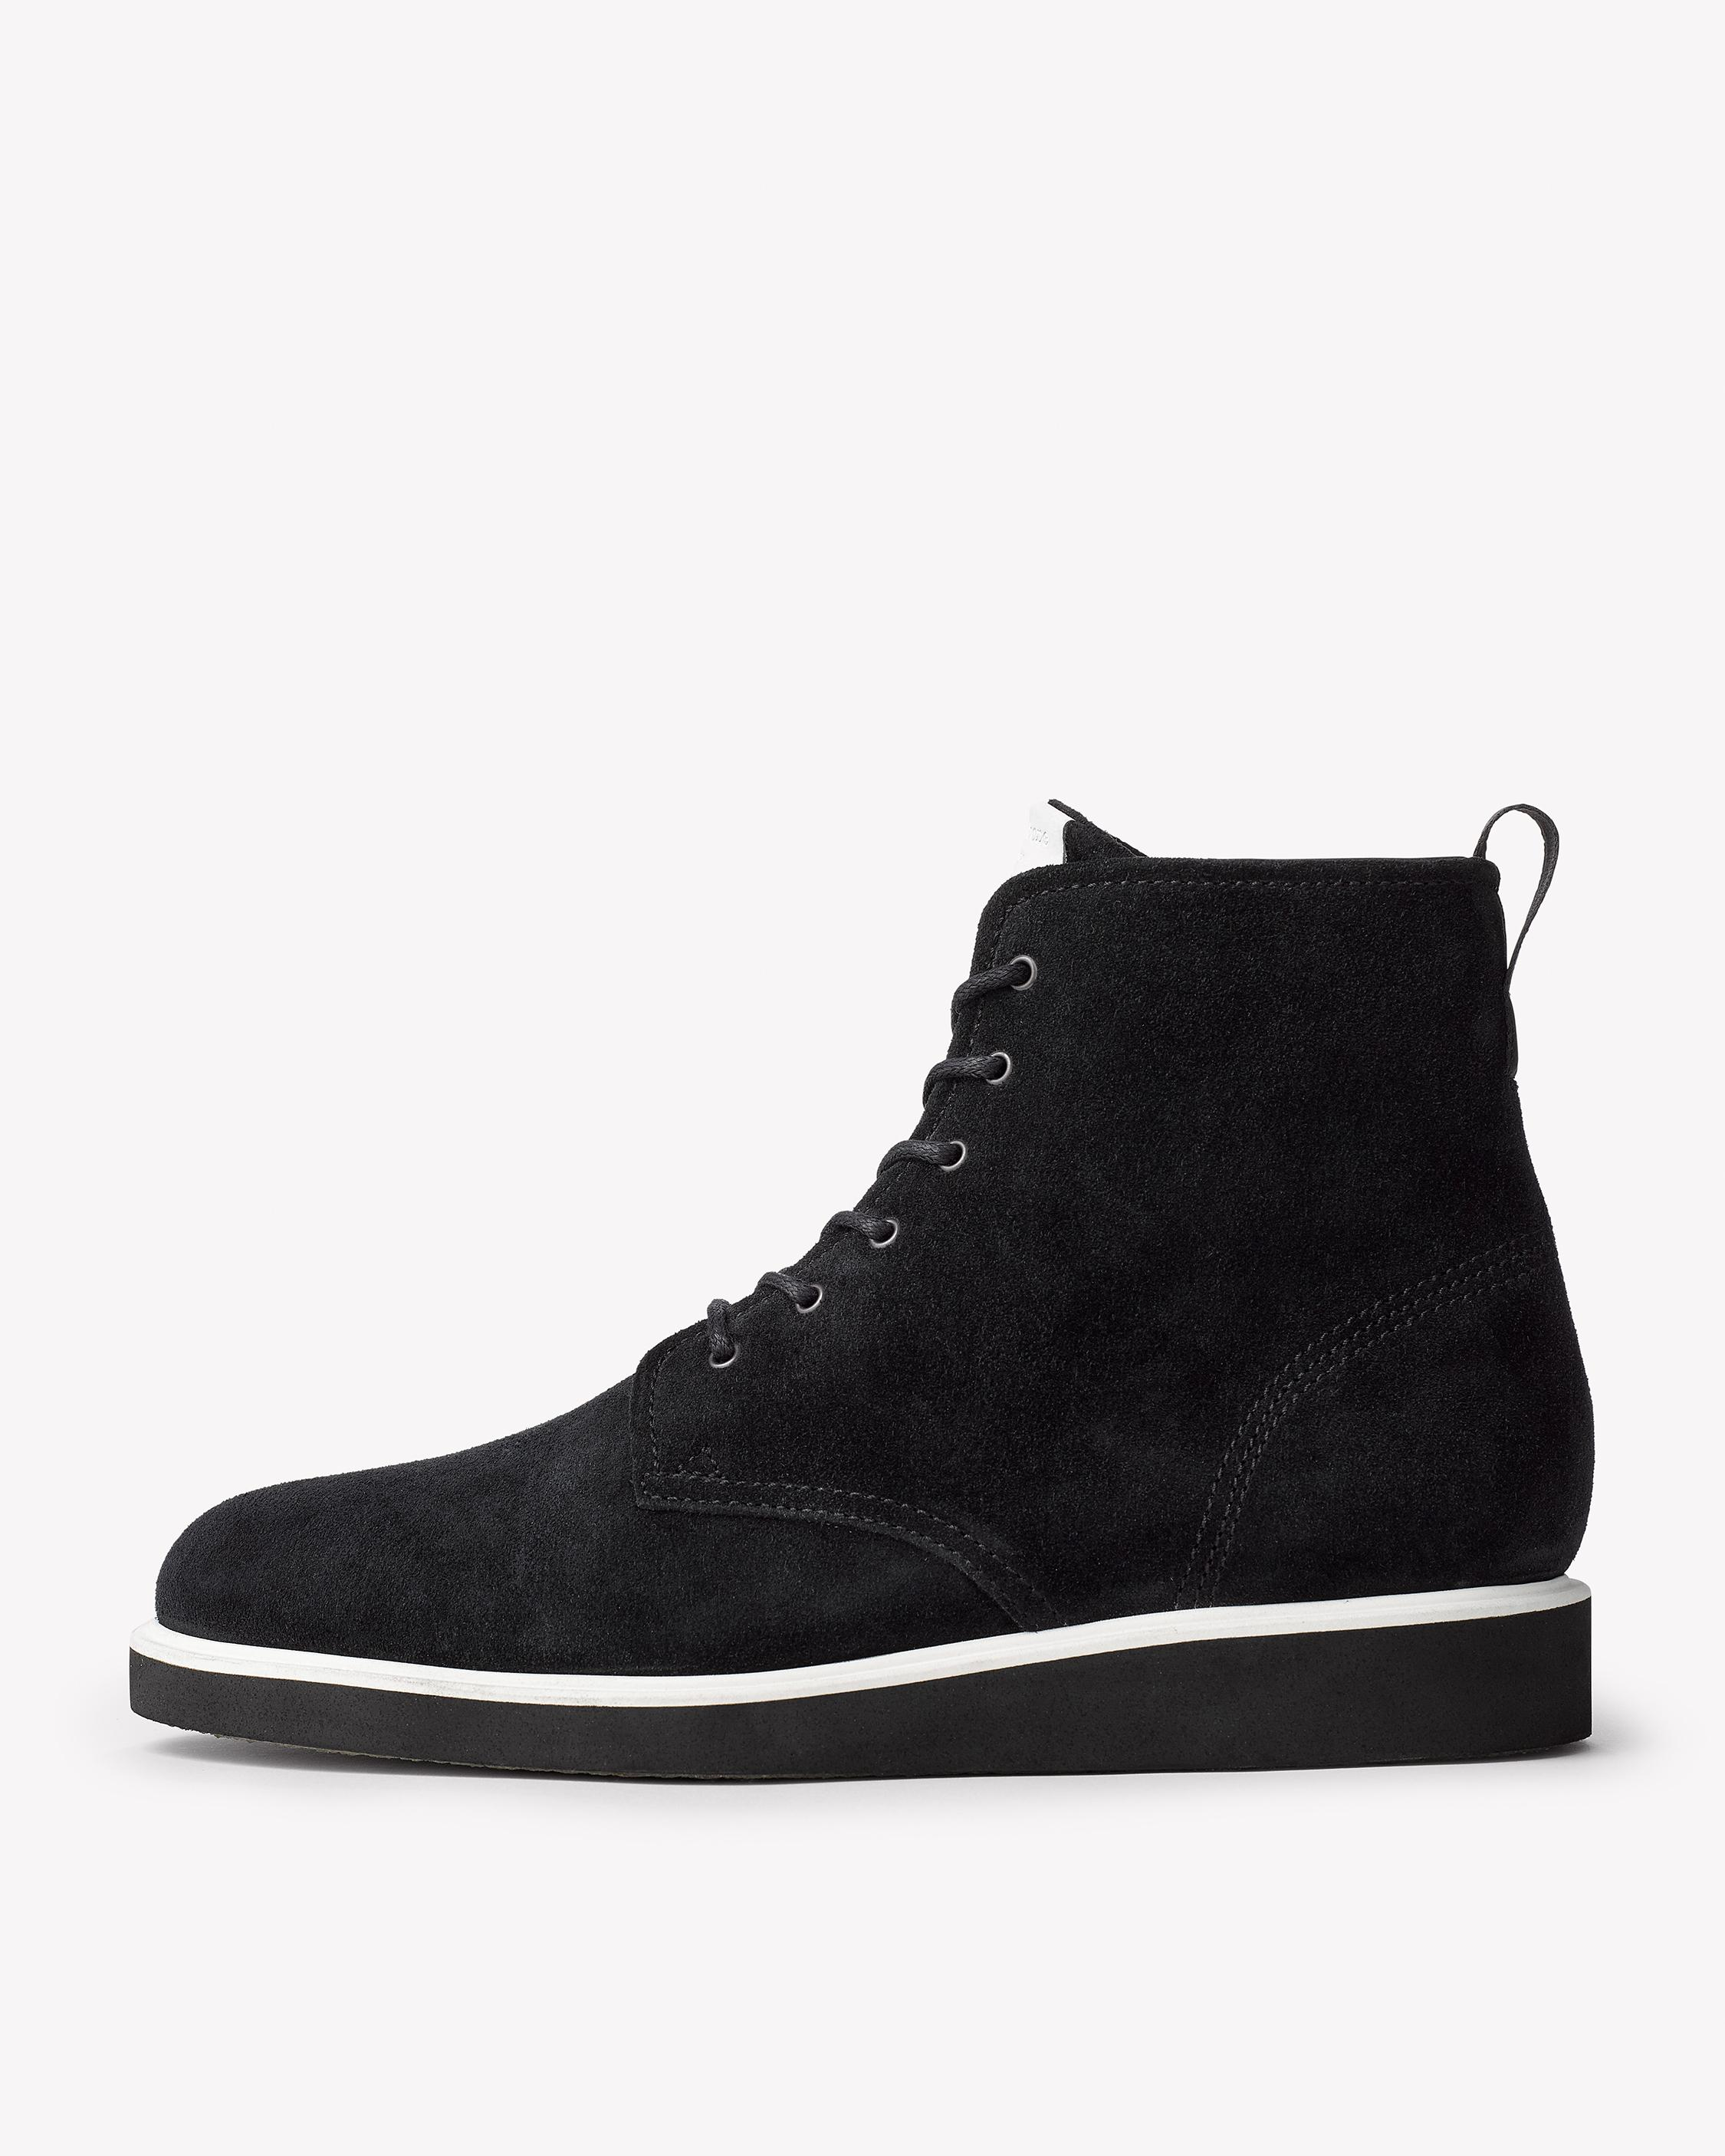 Rag & Bone Black Elliot Boots